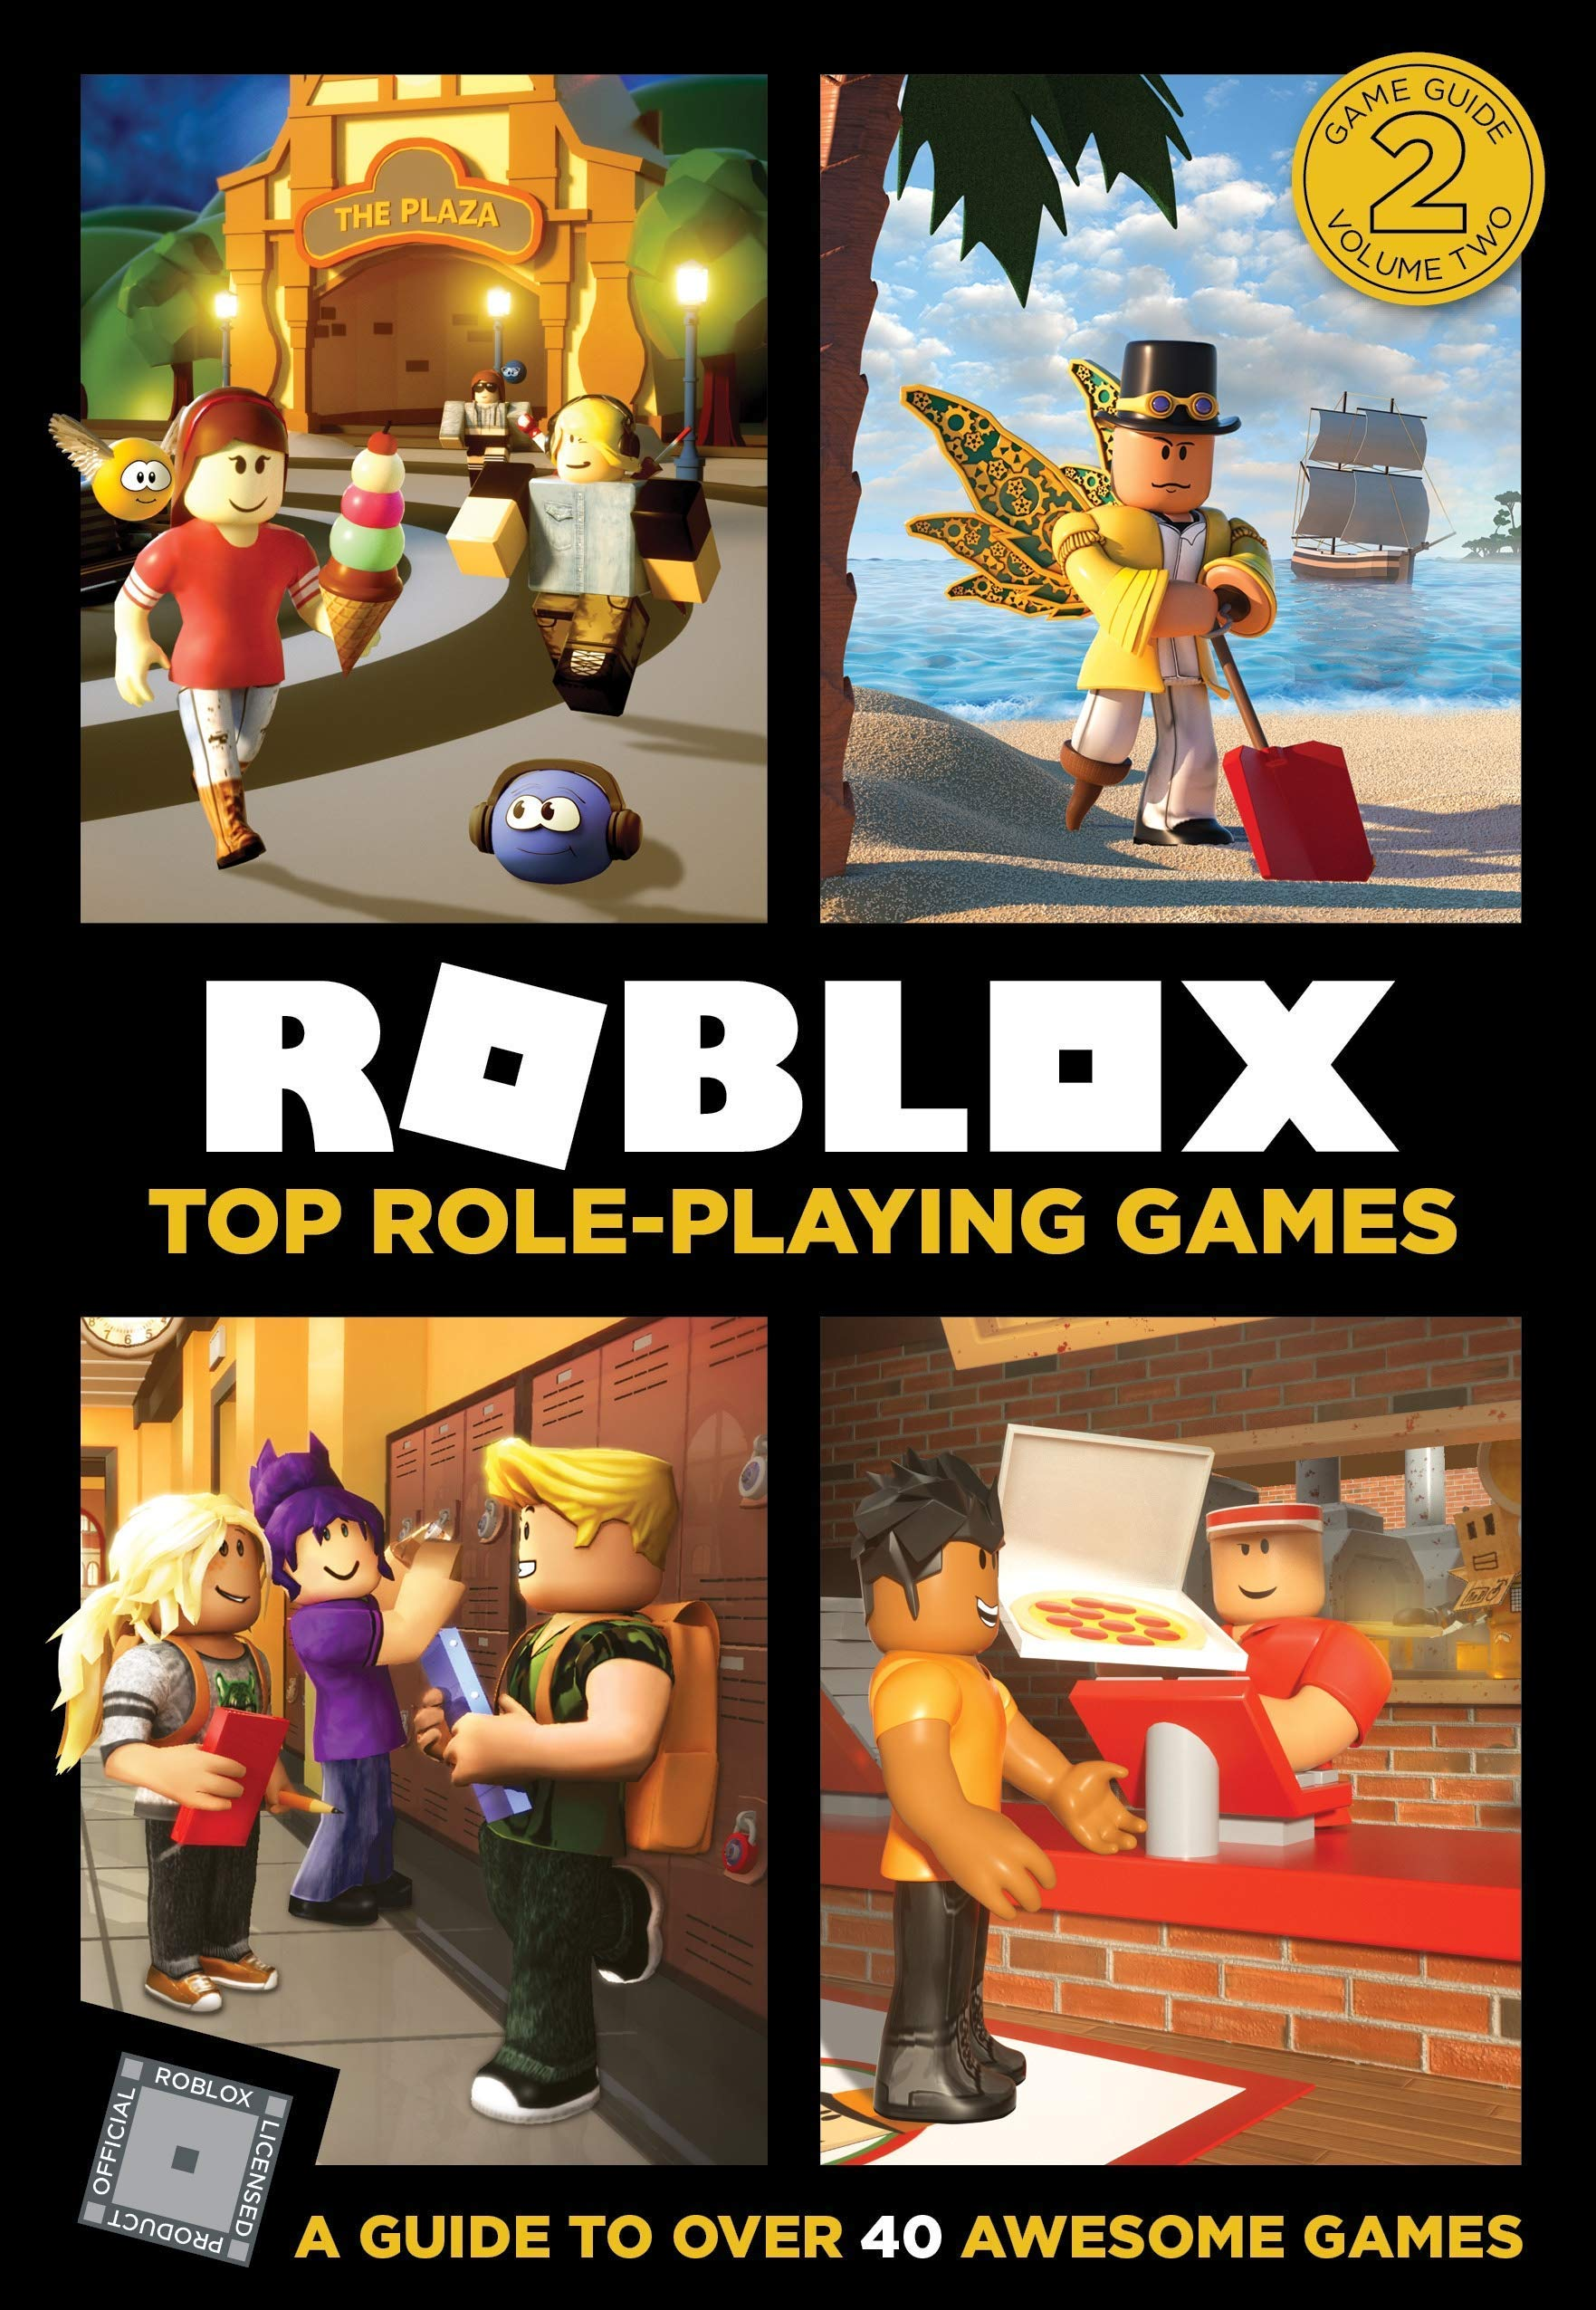 Roblox Ultimate Guide 3 Books Collection Set Top Role Playing